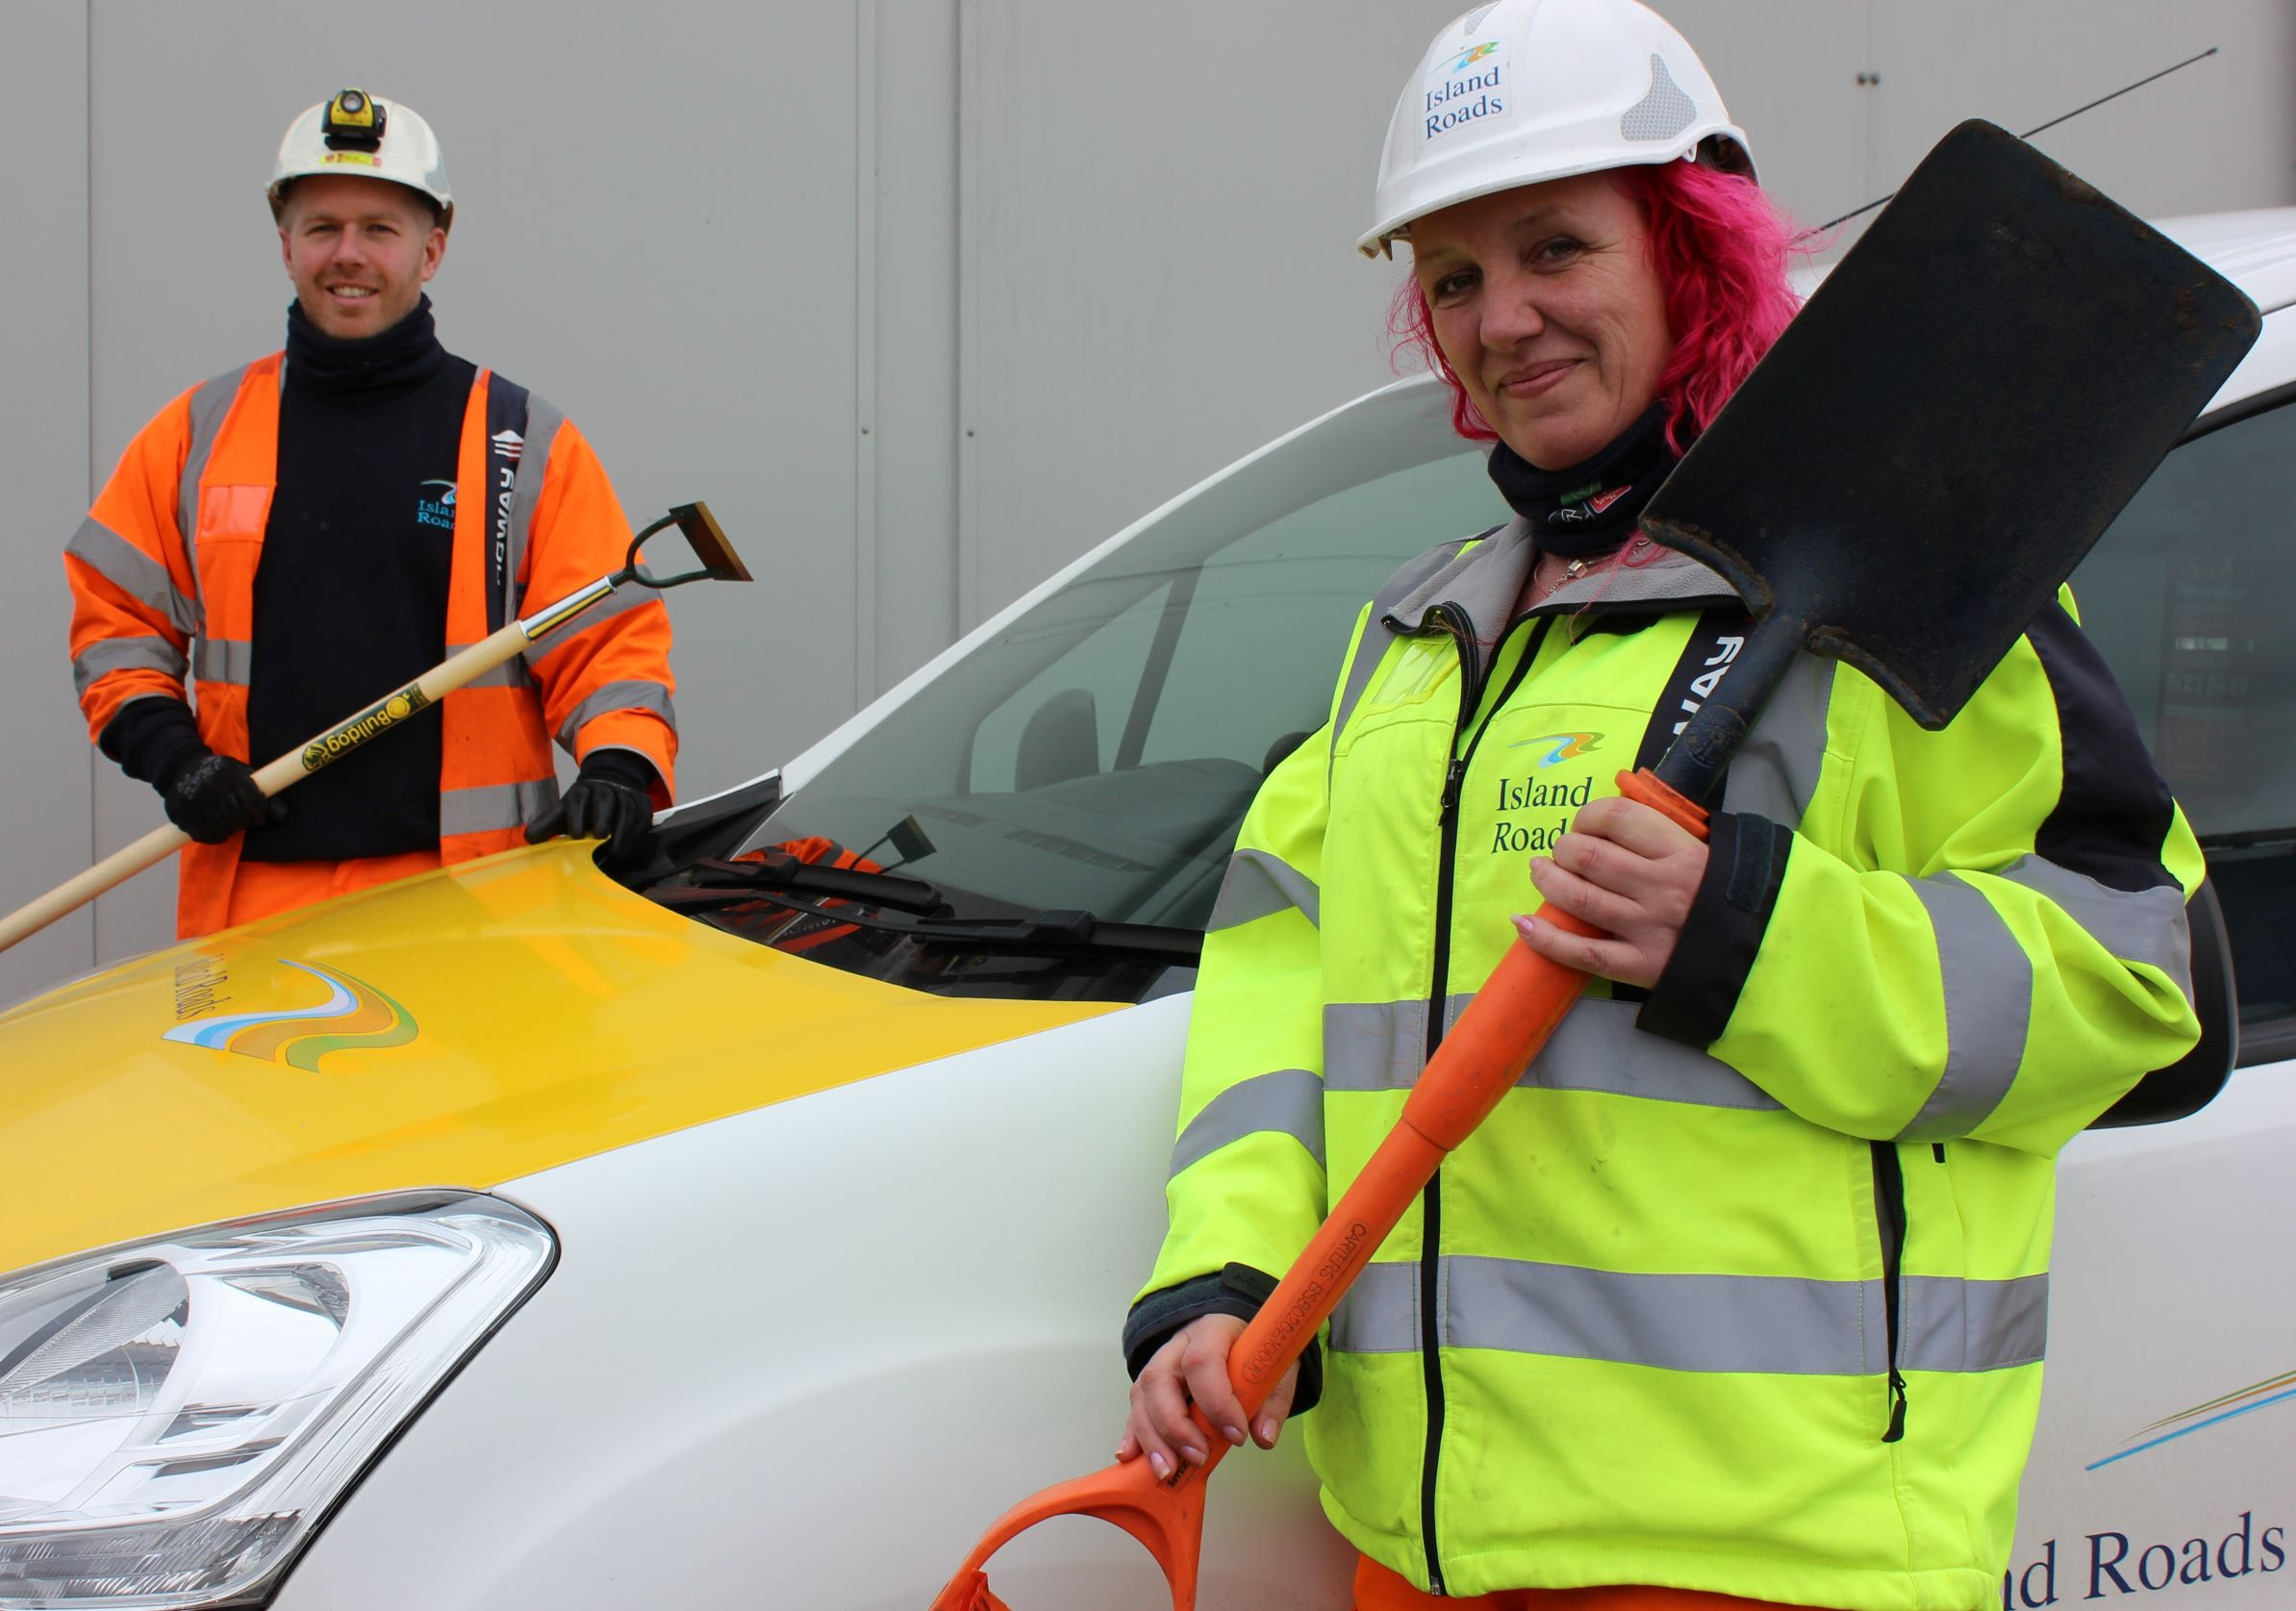 Photo showing two people one, a woman, in front of the vehicle holding a spade and one a man behind an Island Roads vehicle holding a hoe. Both are Island Roads staff, wearing branded clothing.